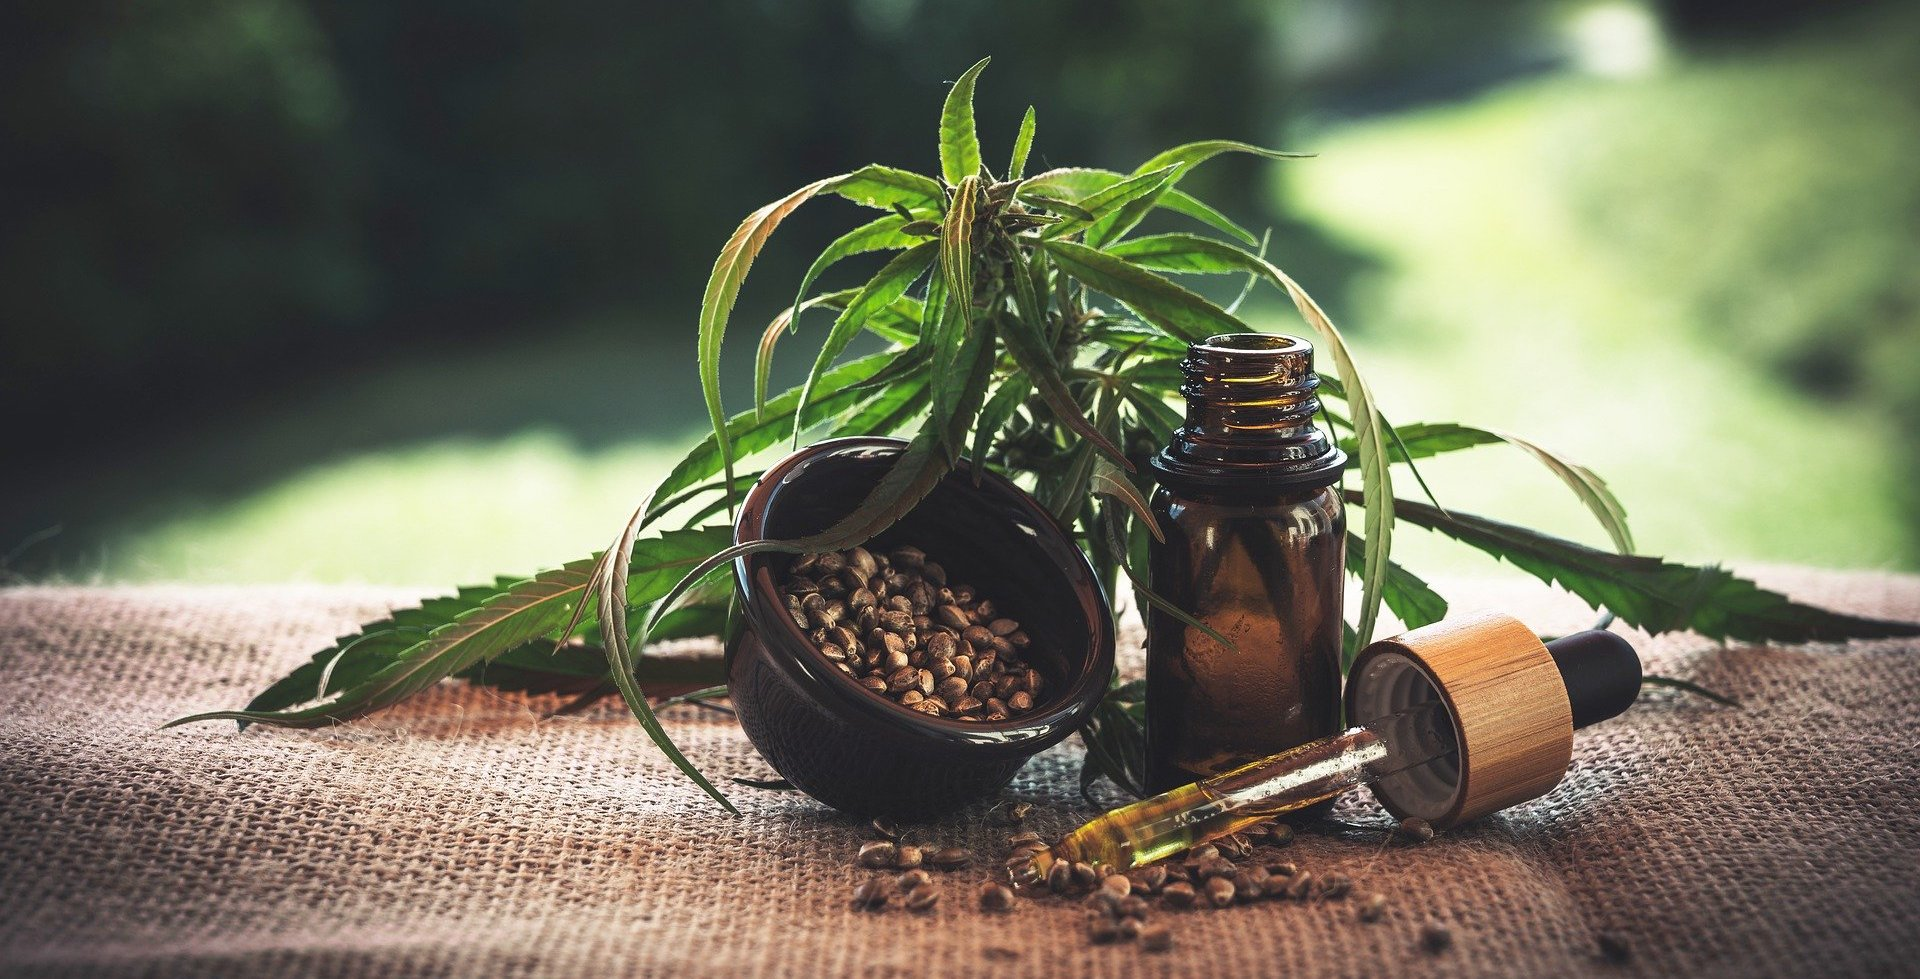 A bottle of generic CBD oil, alongside some hemp leaves and hemp seeds, all sitting on natural-colored hemp fabric.